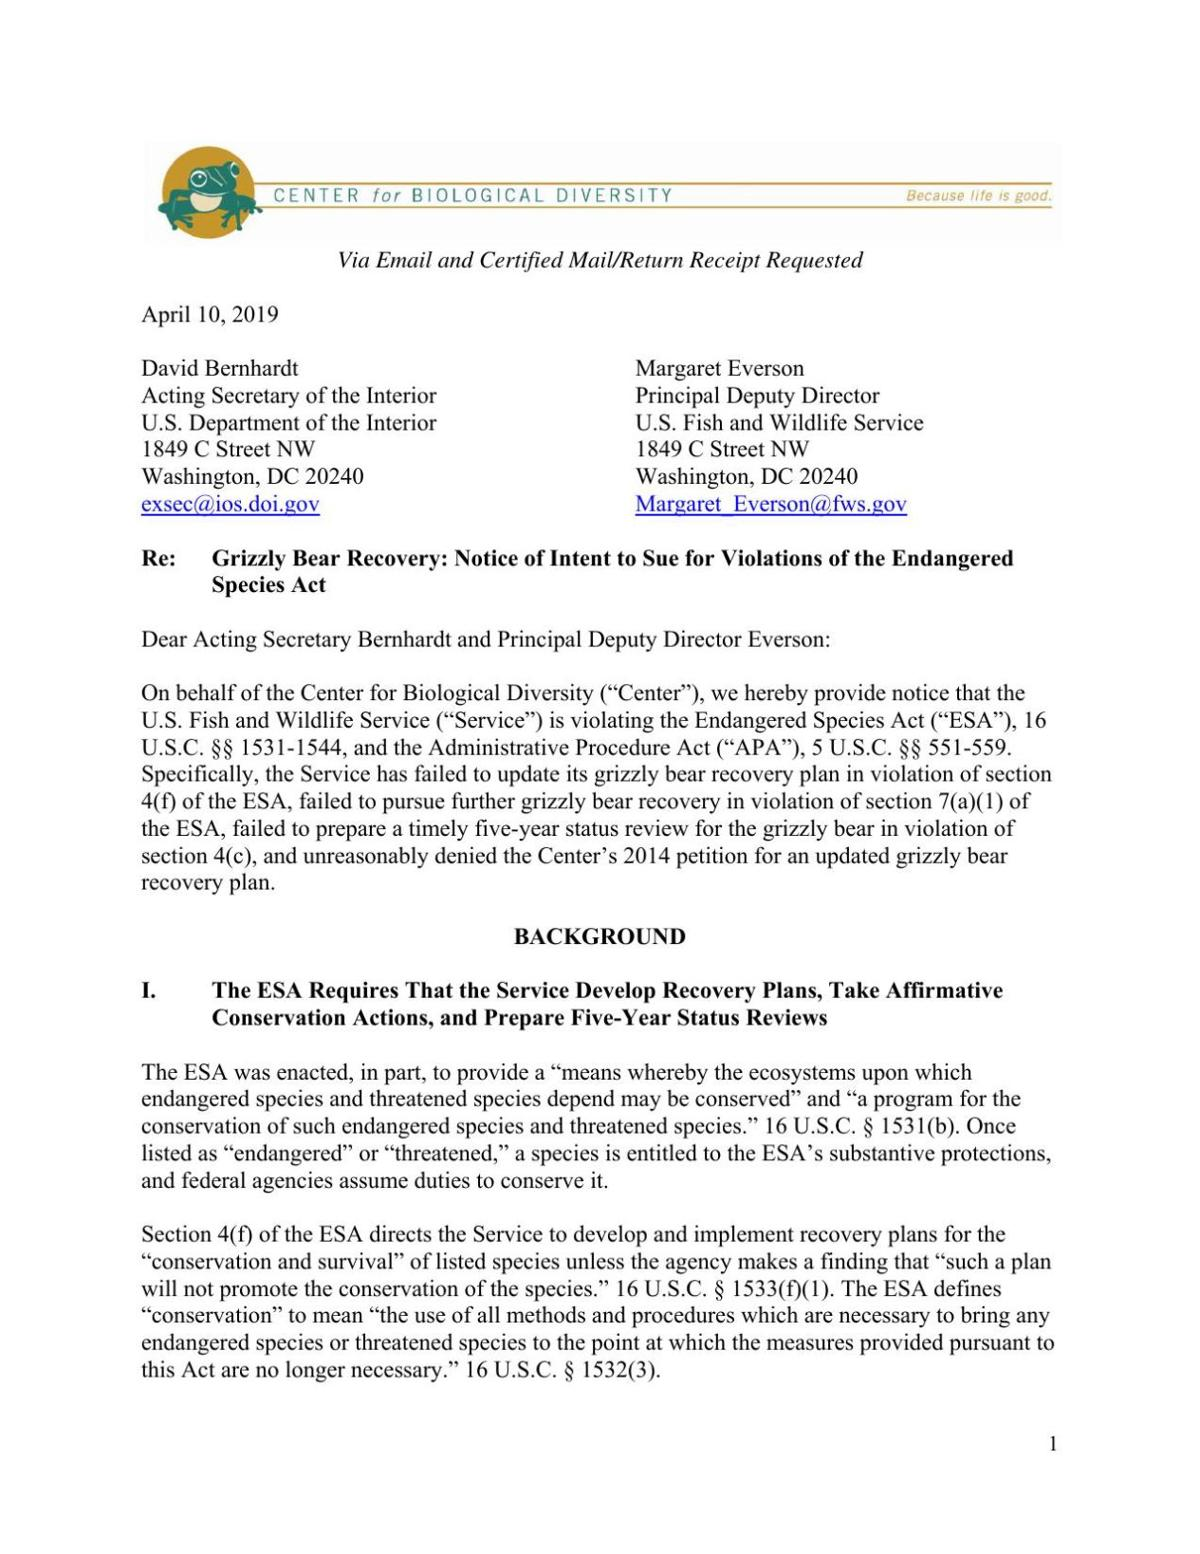 Grizzly Bear Recovery: Notice of Intent to Sue for Violations of the Endangered Species Act